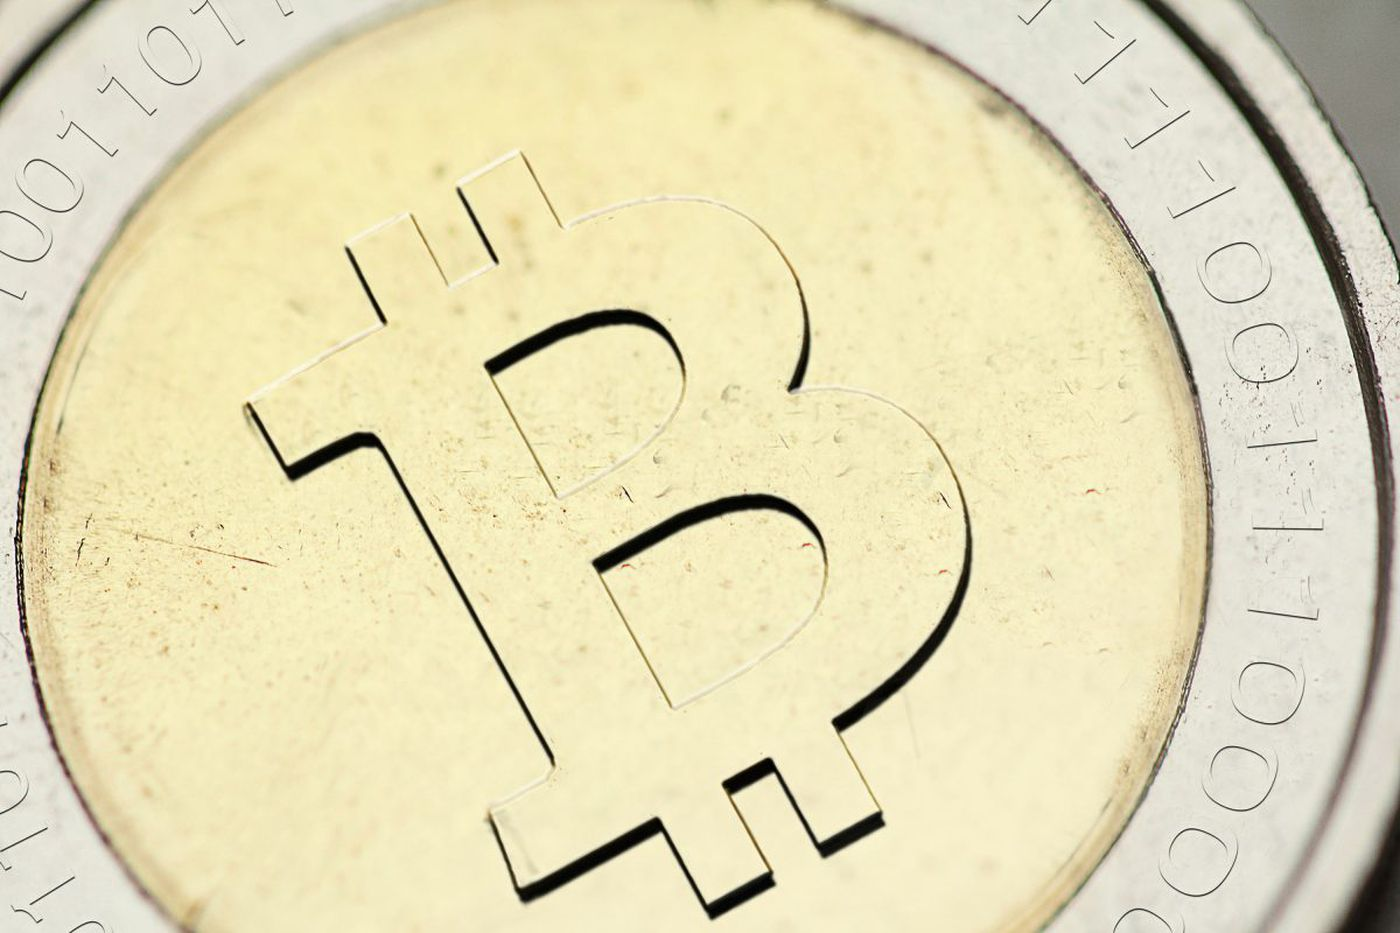 You can't hold a bitcoin, but the web currency's value has skyrocketed. Why?